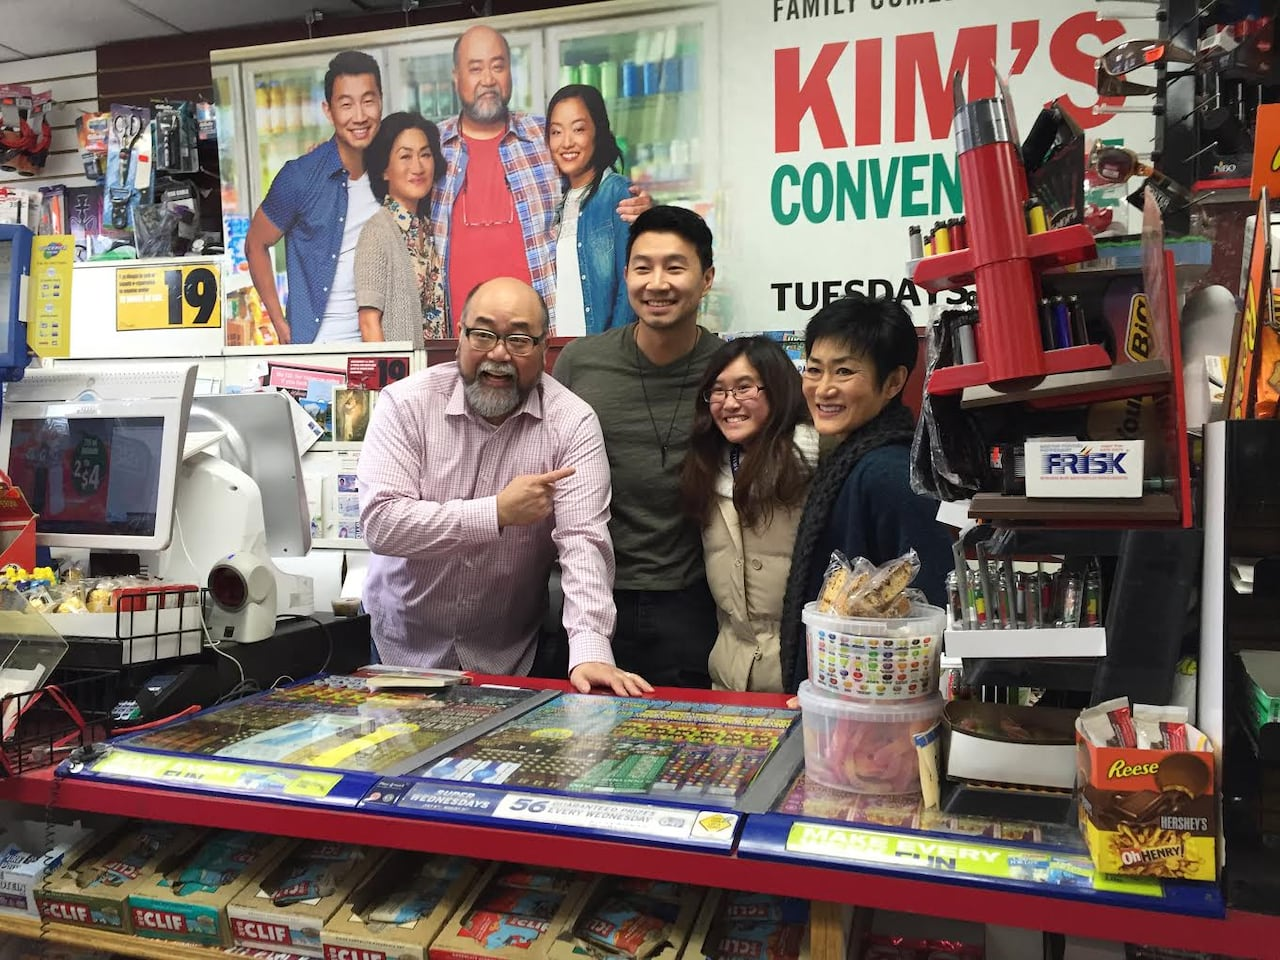 Kim's Convenience fans brave the cold to meet stars of hit CBC show